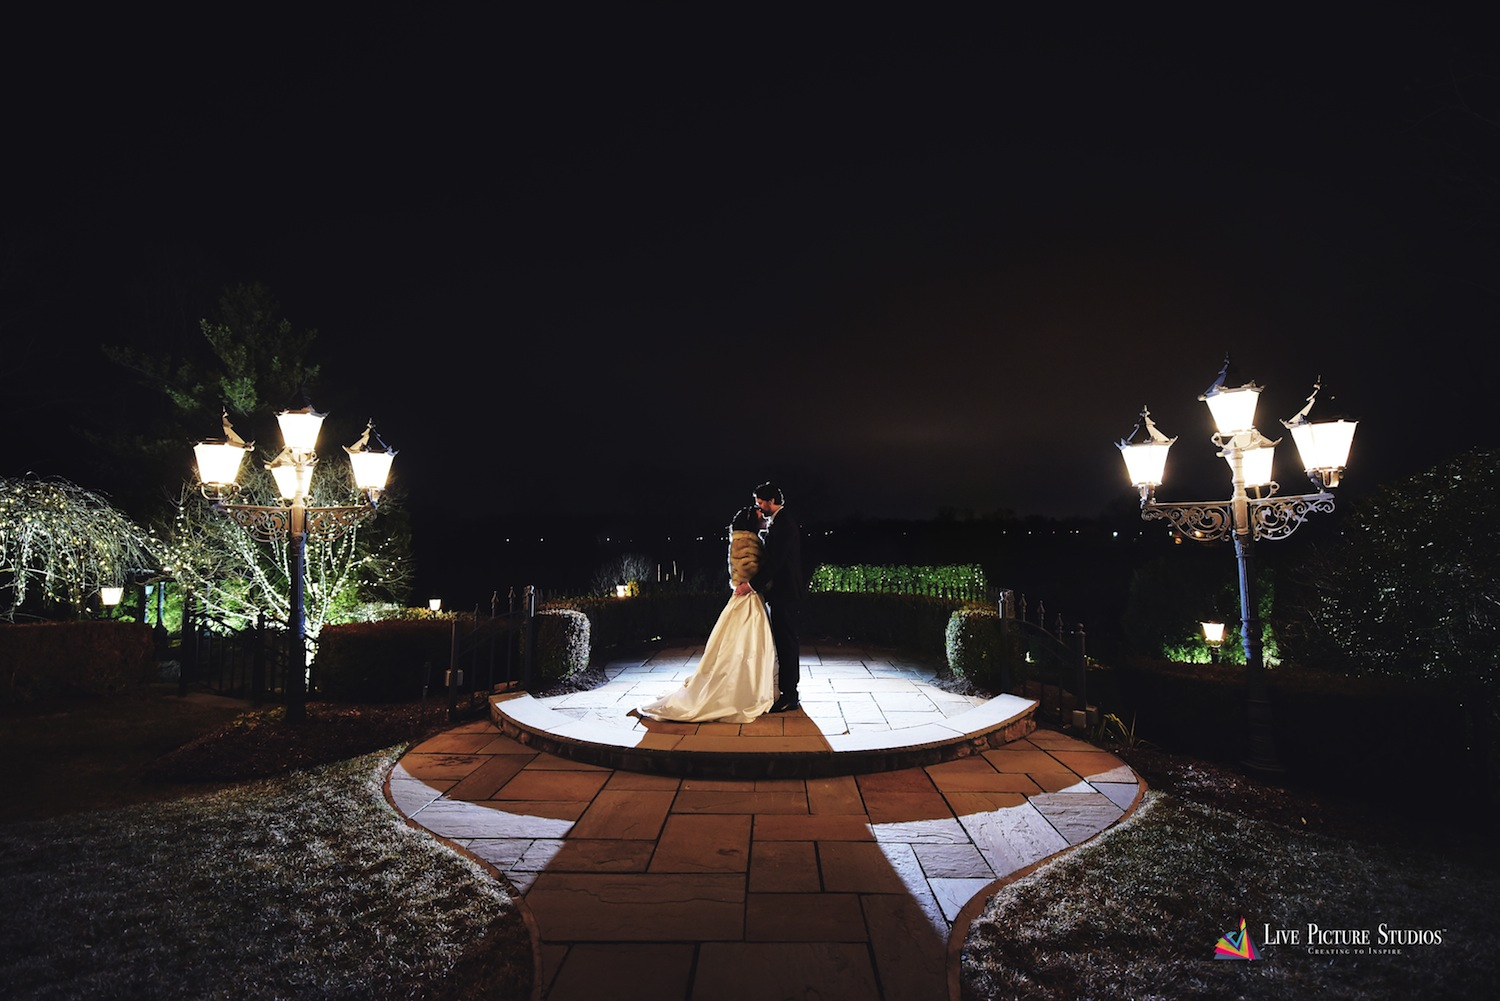 dolly-and-jordan-embracing-outside-at-night-new-jersey-wedding-photos